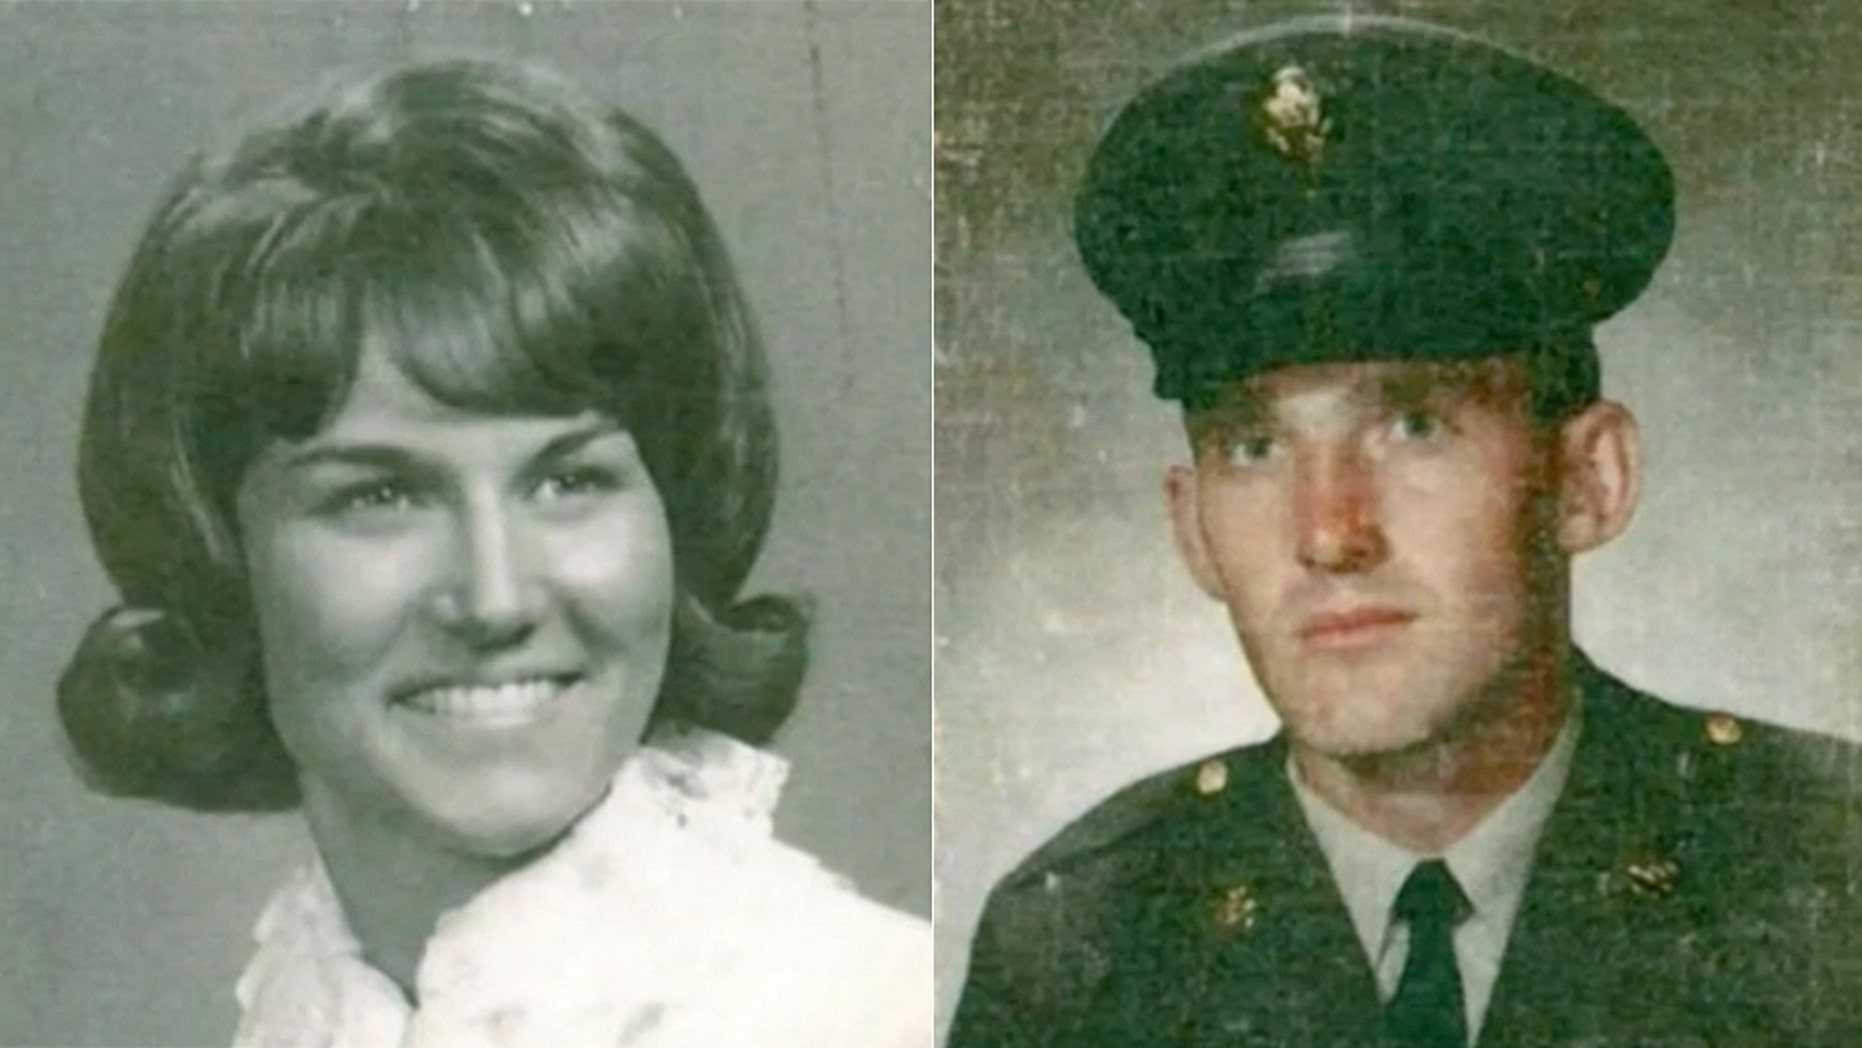 Linda and Clifford Bernhardt were found dead in their Billings-area home on November 7, 1973.